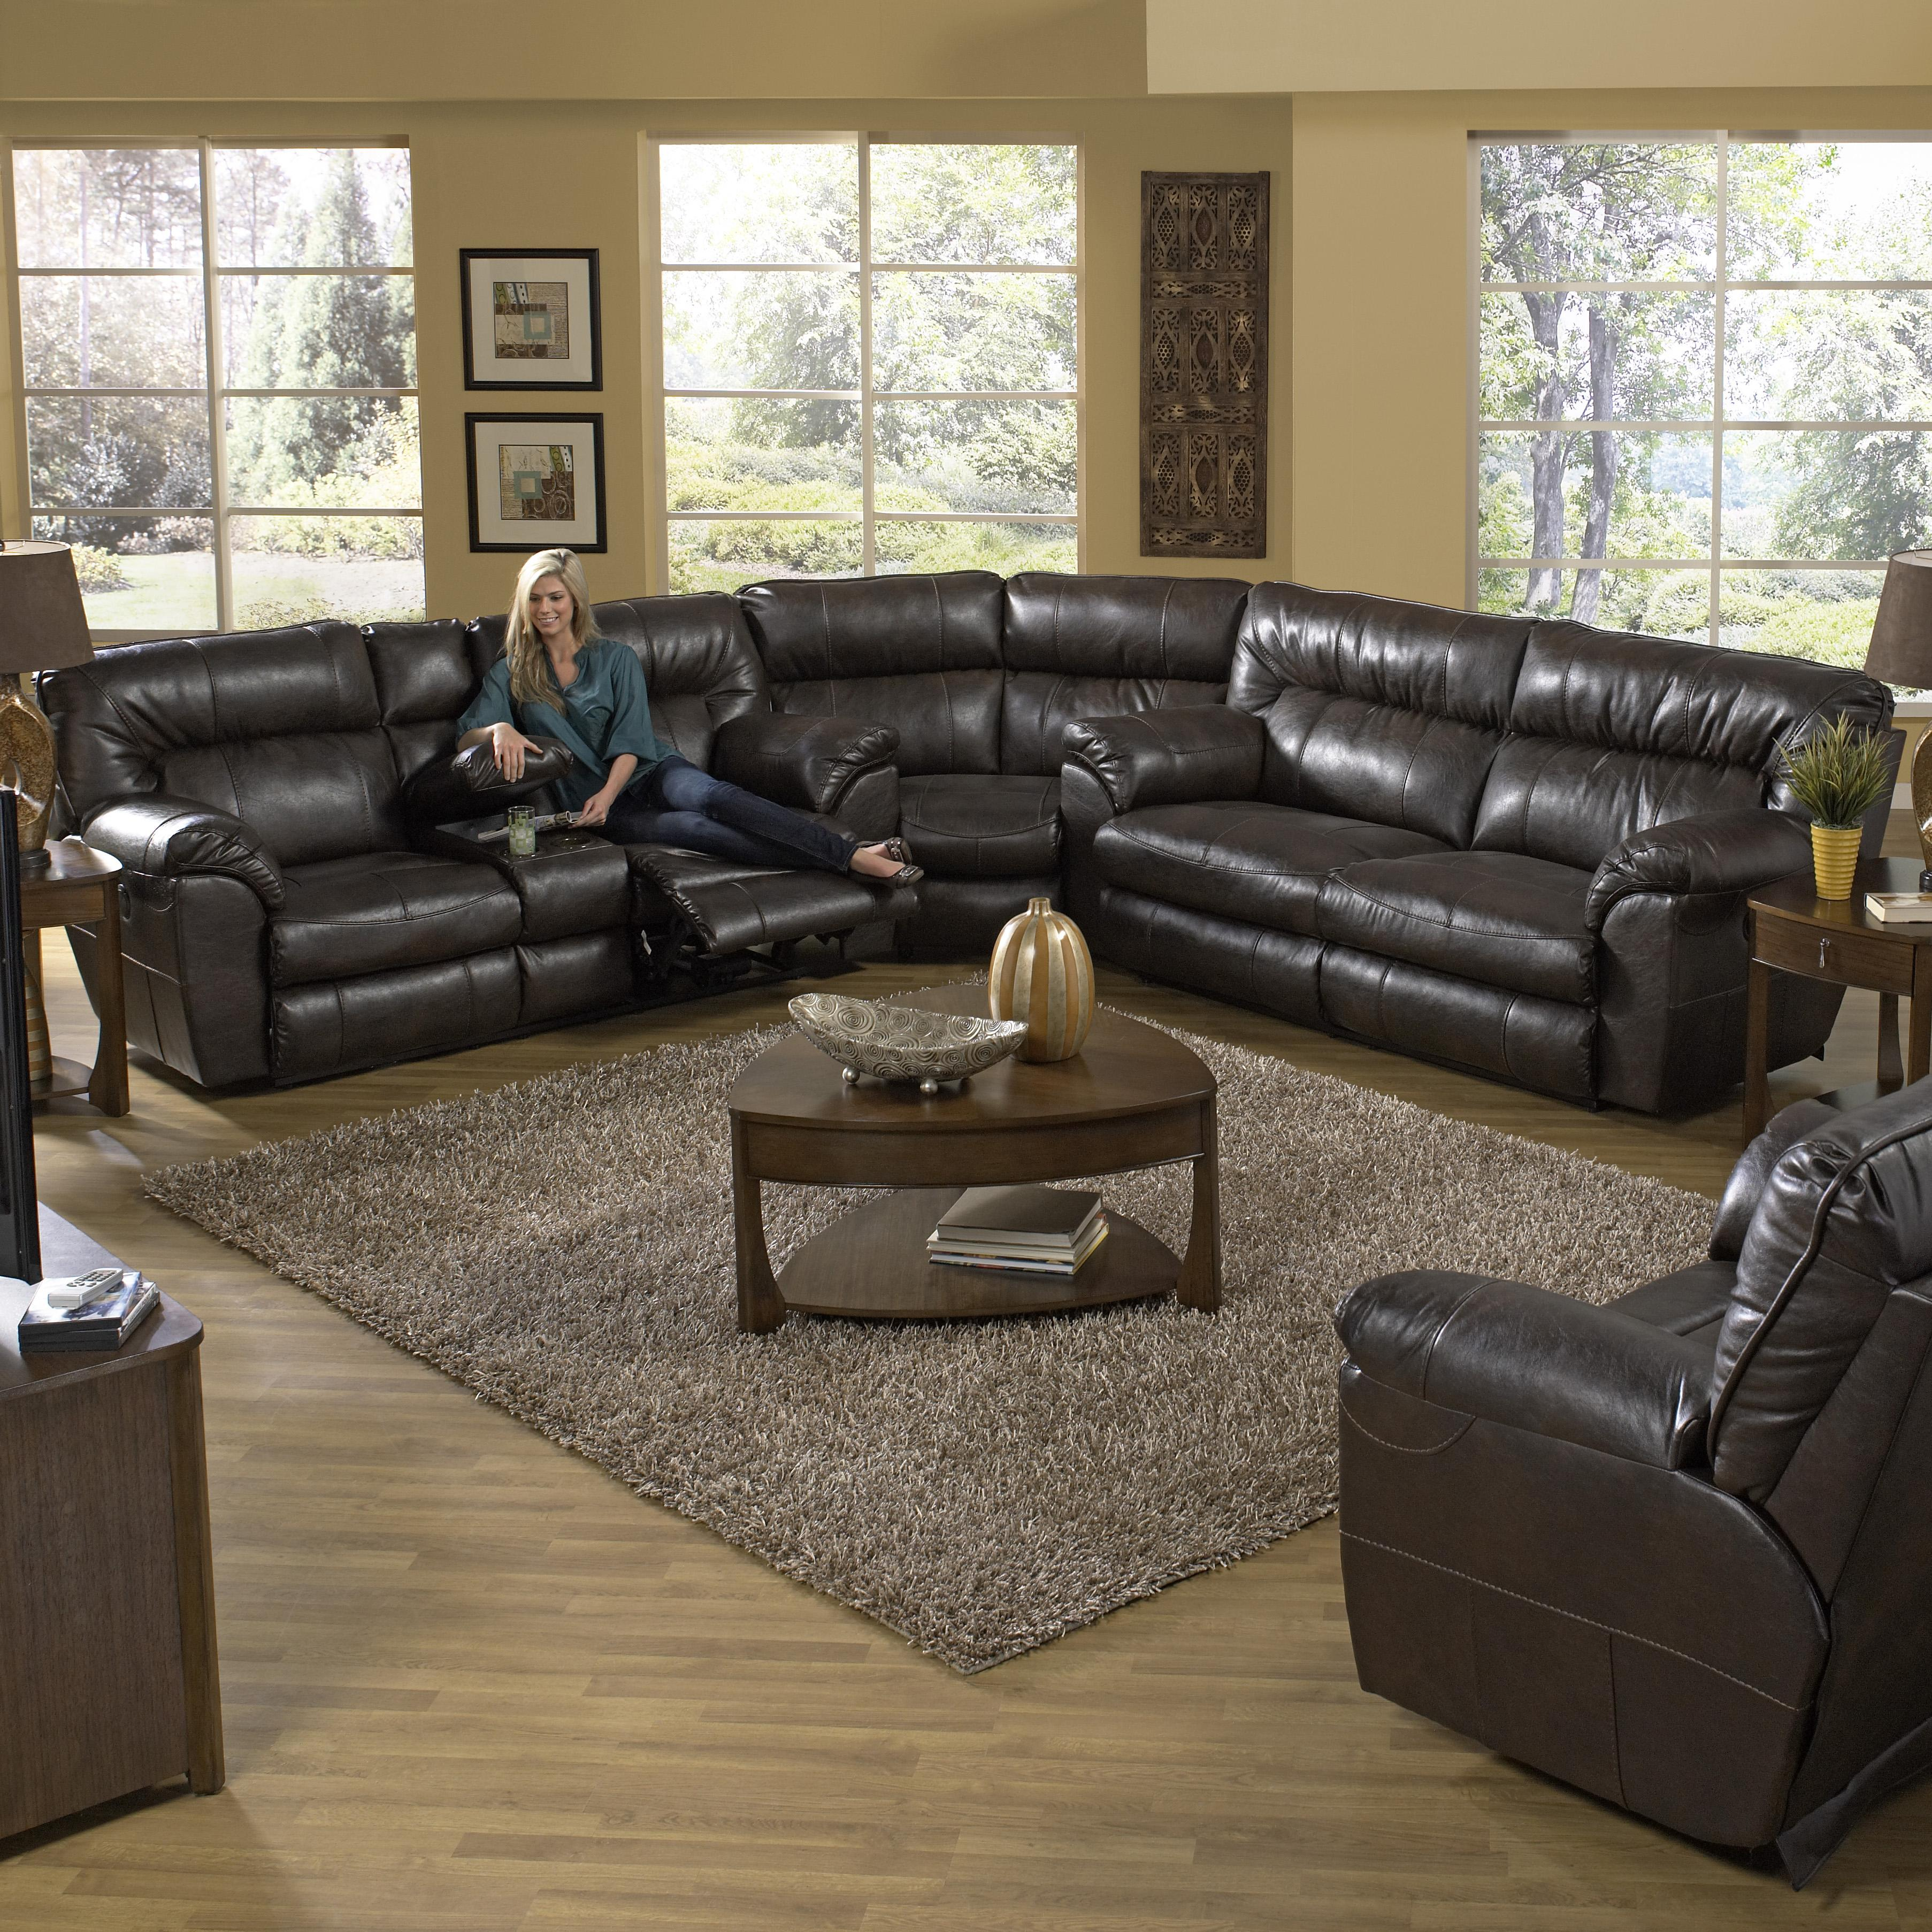 extra large living room chairs wide living room chairs 22602